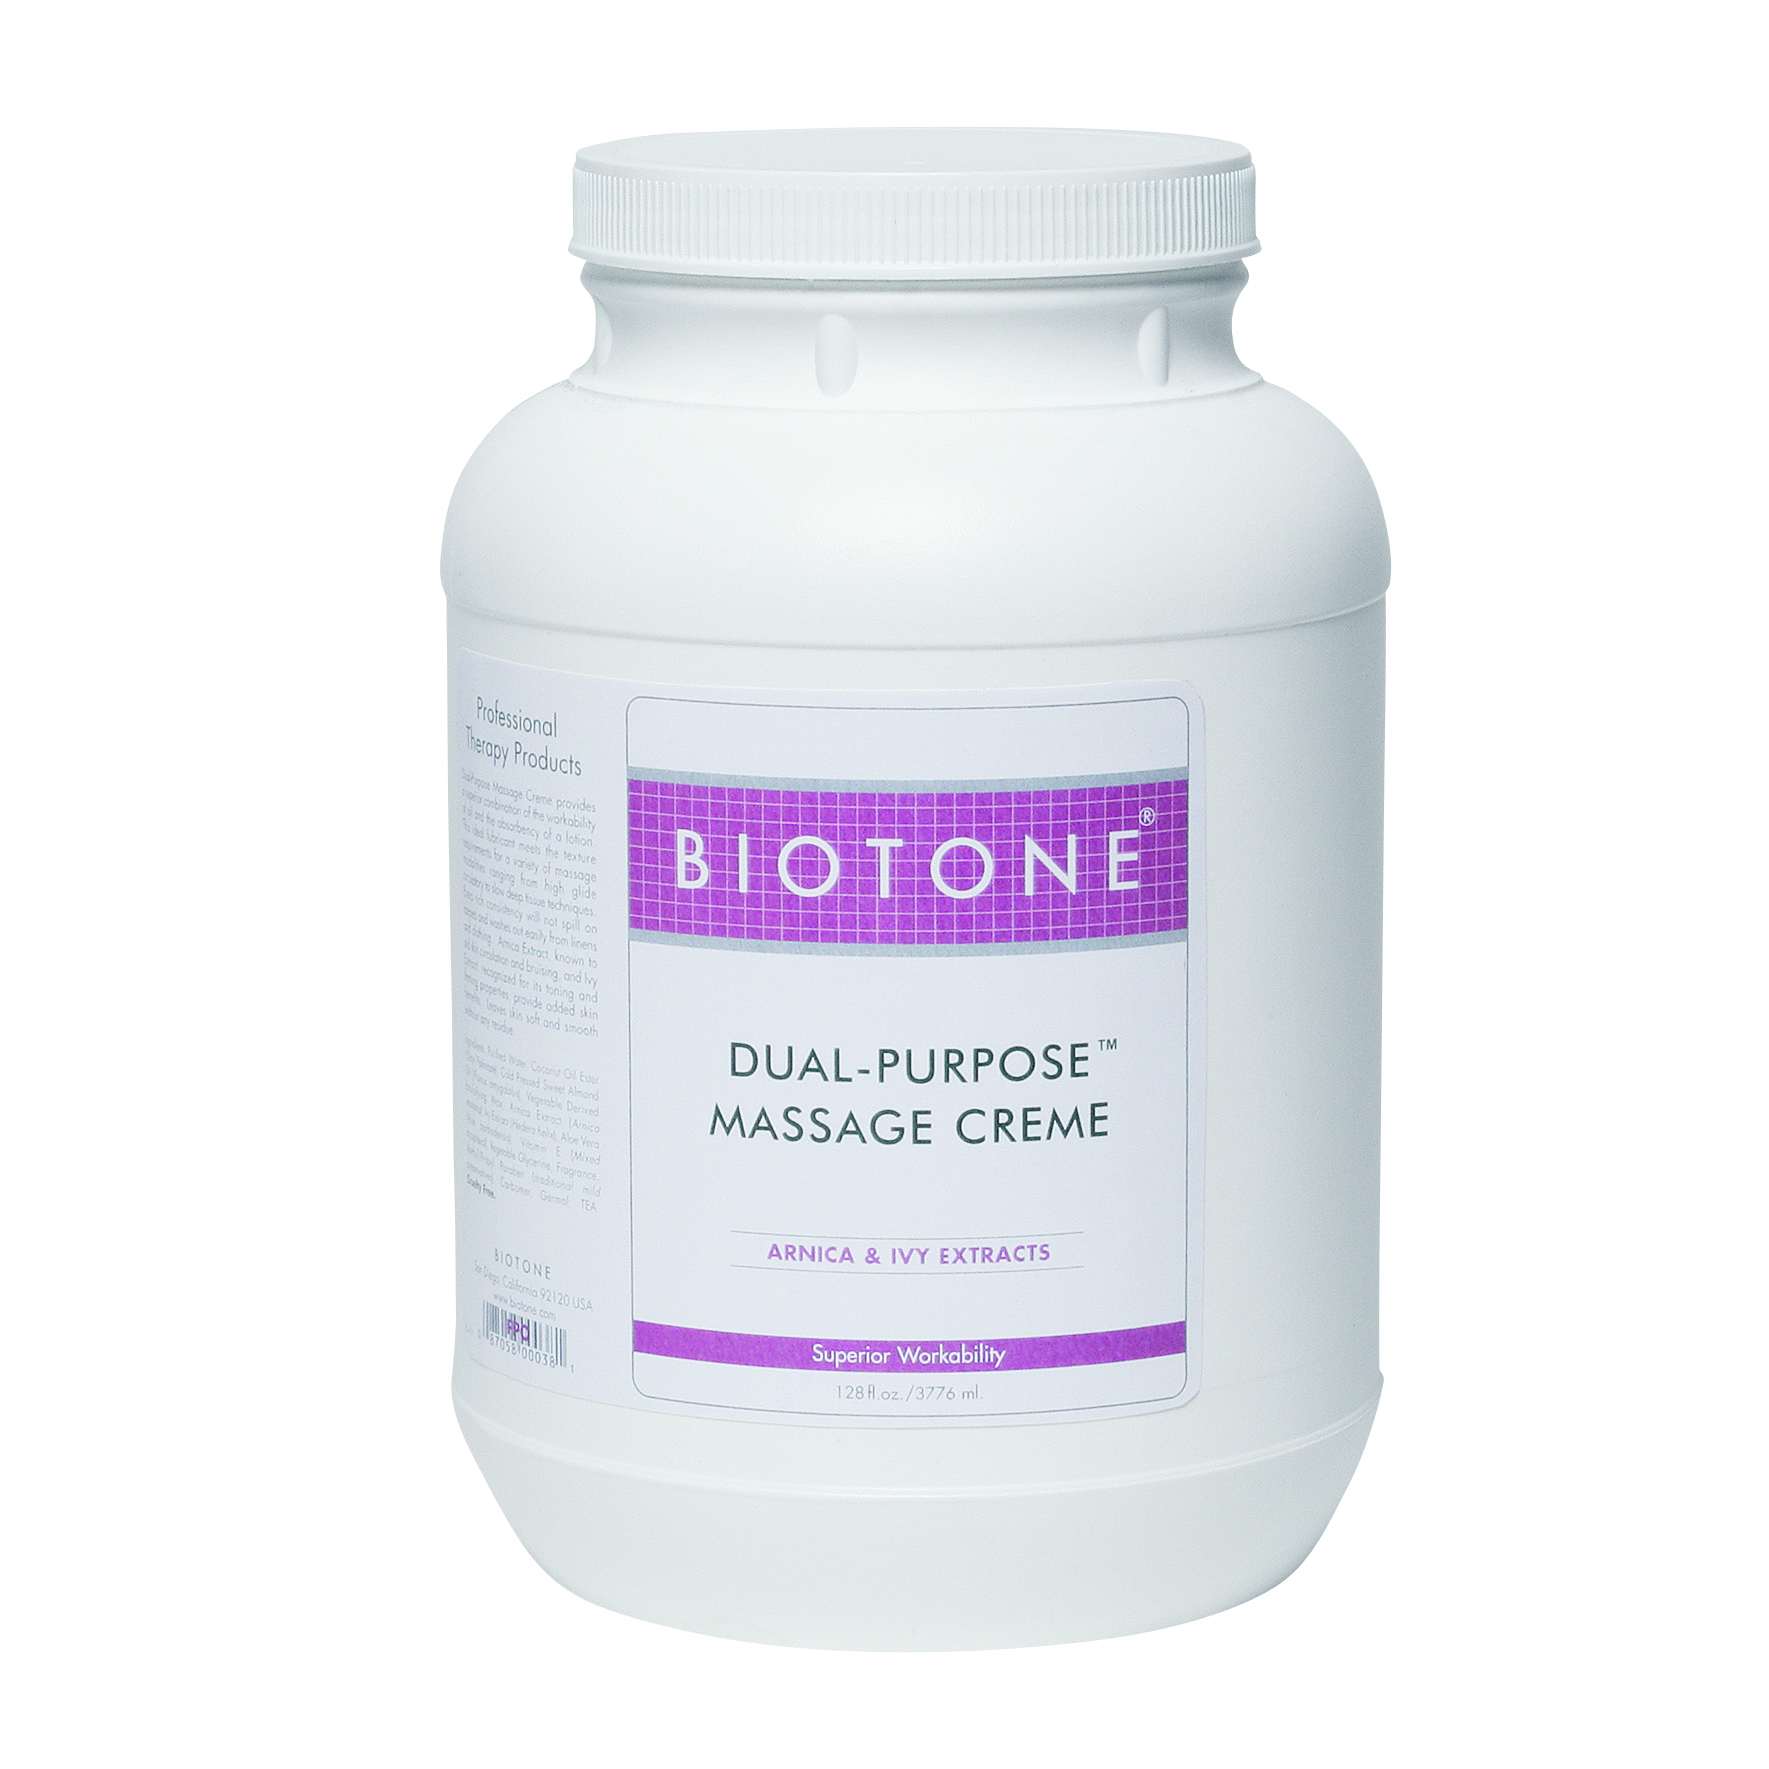 Biotone EFA by Genestra is a powerful essential fatty acid supplement (EFA) designed to support and regulate hormonal imbalances, including premenstrual and menopausal disorders; and for maintaining skin elasticity, energy levels and a strong immune system during pregnancy and periods of stress.